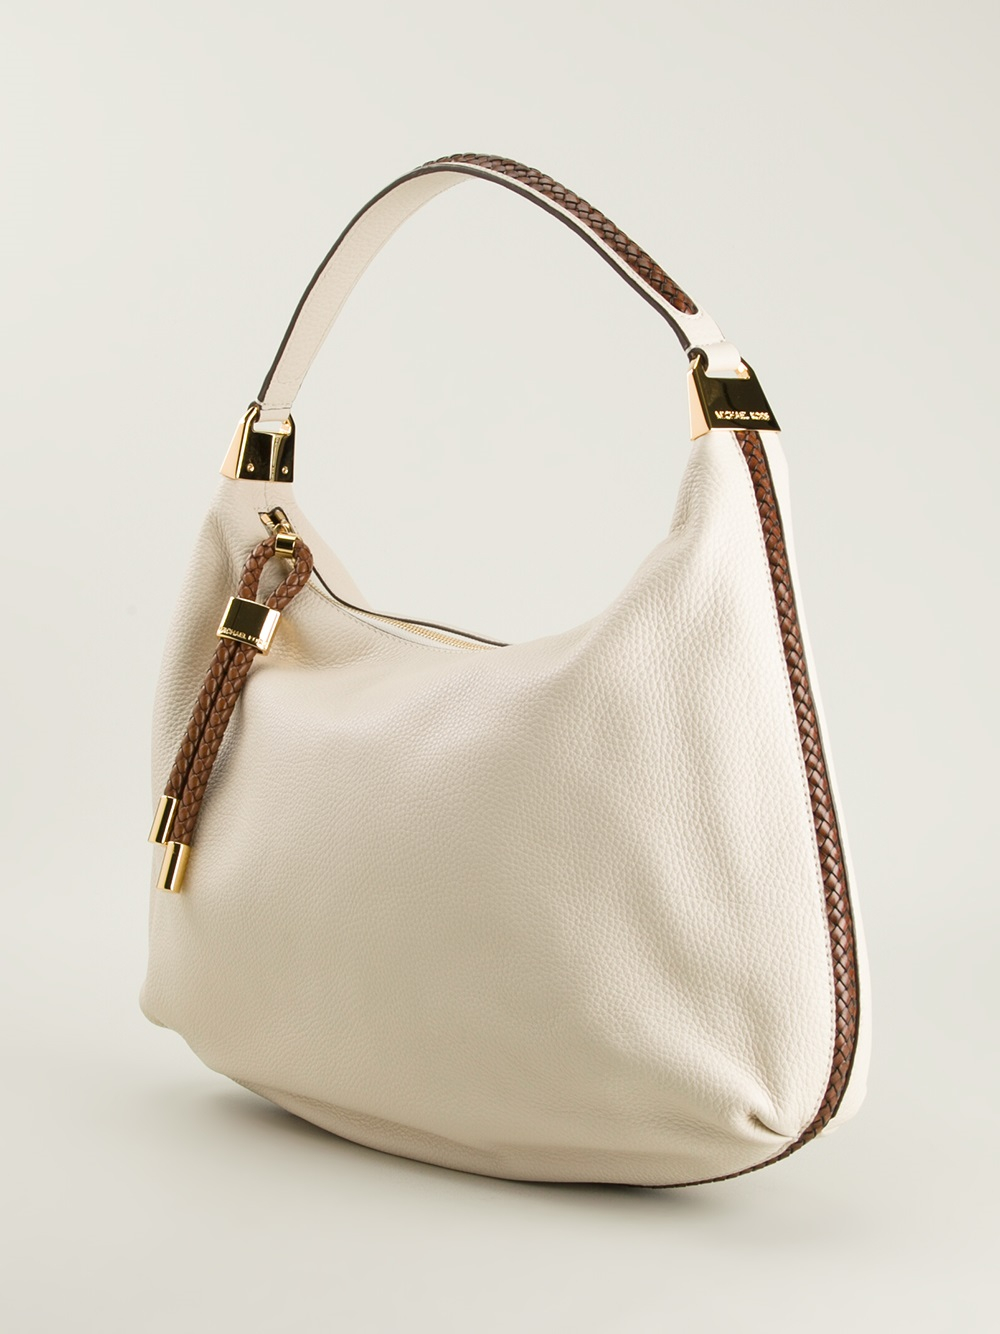 michael kors skorpios hobo shoulder bag in white lyst. Black Bedroom Furniture Sets. Home Design Ideas